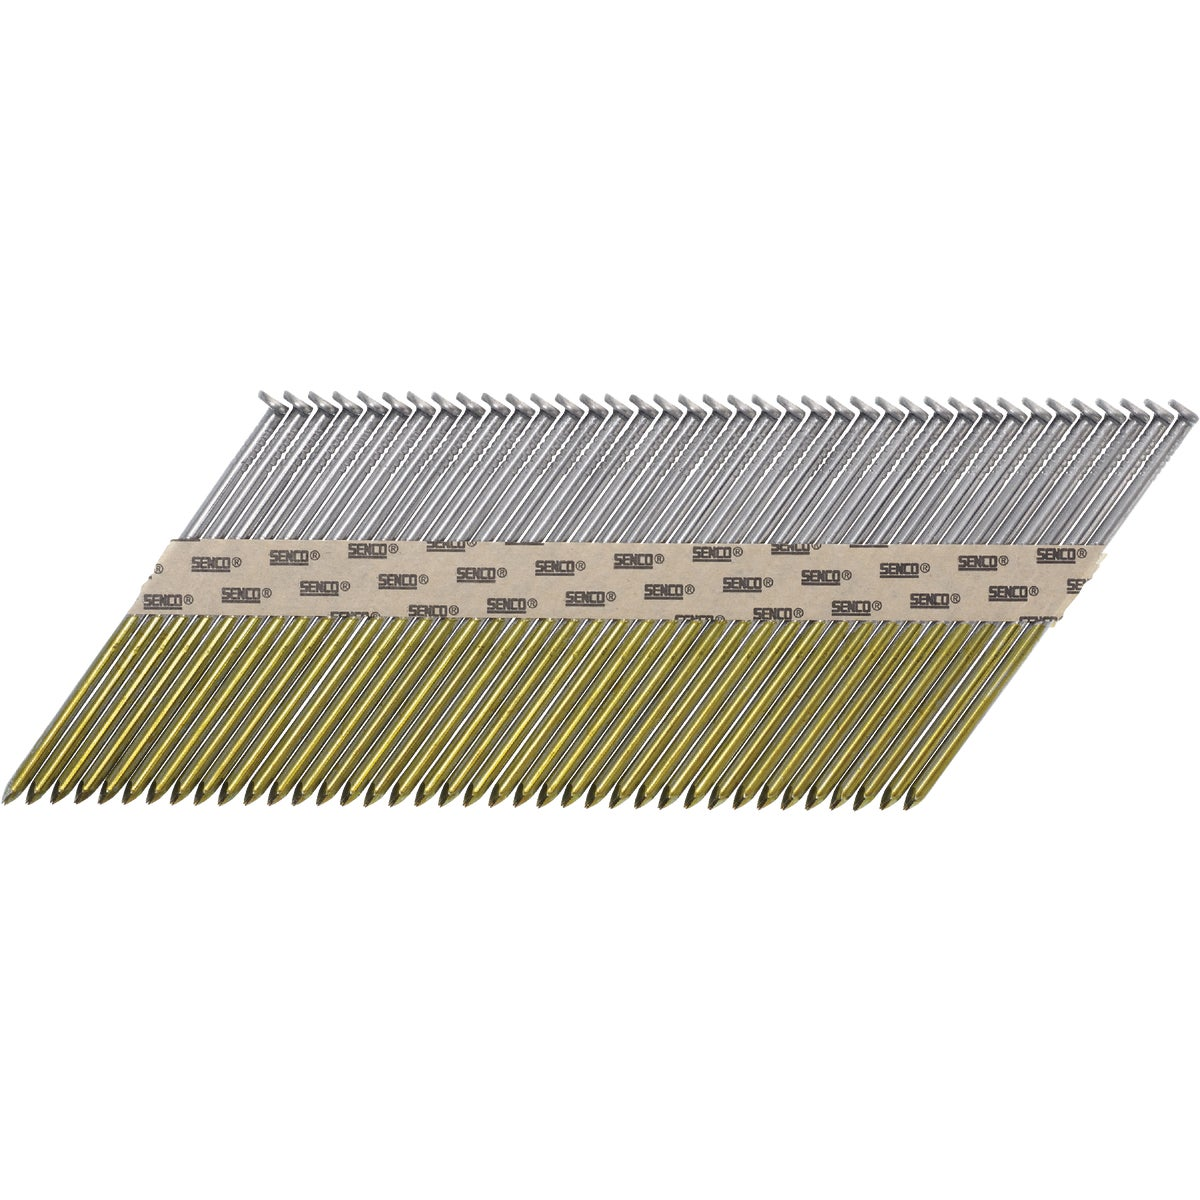 "3-1/4"" FRAMING NAIL - KC28APBX by Senco Brands"